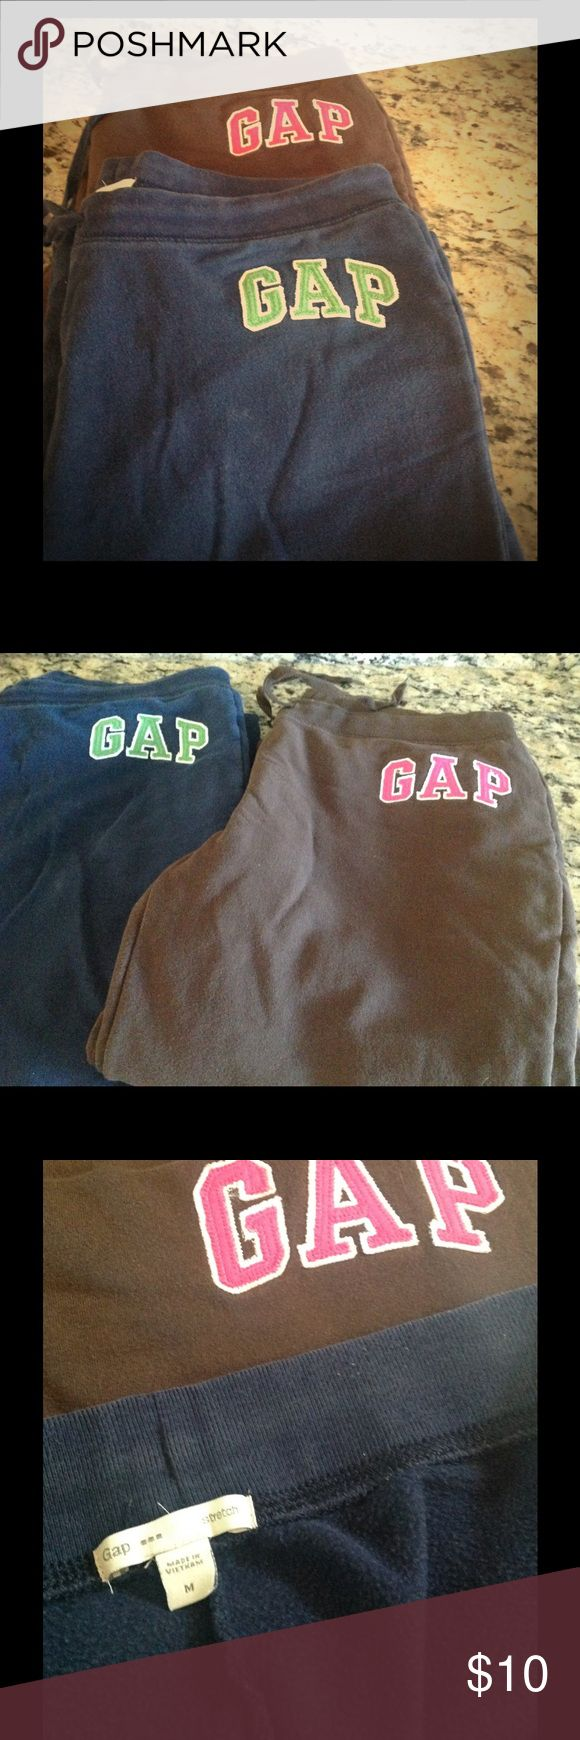 2 pairs Gap original sweatpants, Medium. ✨ 2 pairs of Gap sweatpants- navy with green GAP logo, and brown w/ hot pink logo. Great used condition. (I don't think the brown ones have ever been worn). Great price🎉. Sized medium, true to size. GAP Pants